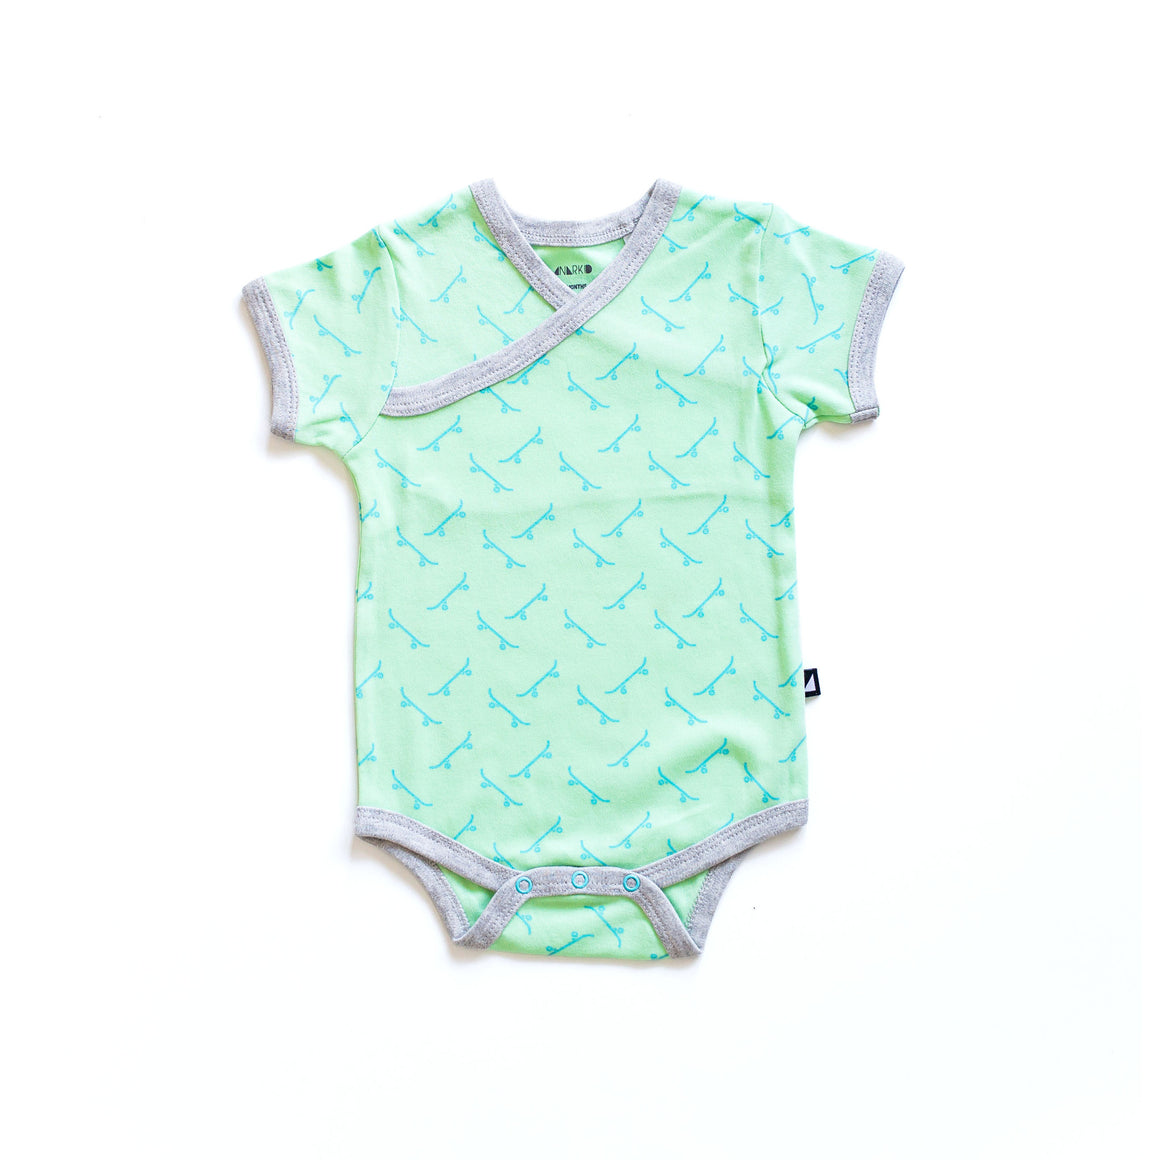 Skate Crossover Bodysuit Spearmint by Anarkid